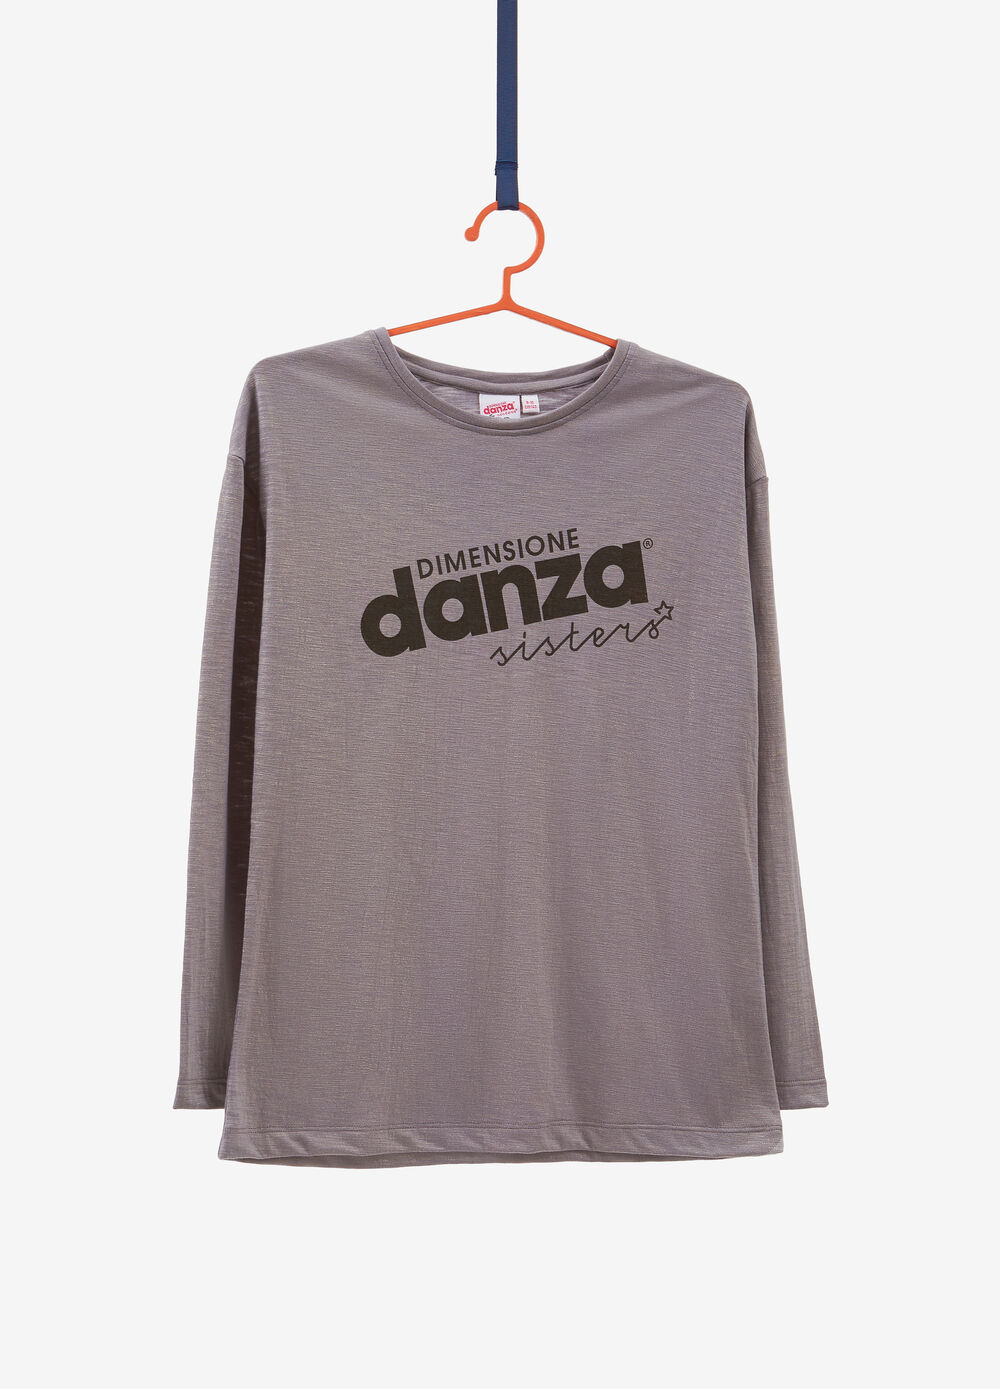 Long-sleeved Dimensione Danza T-shirt